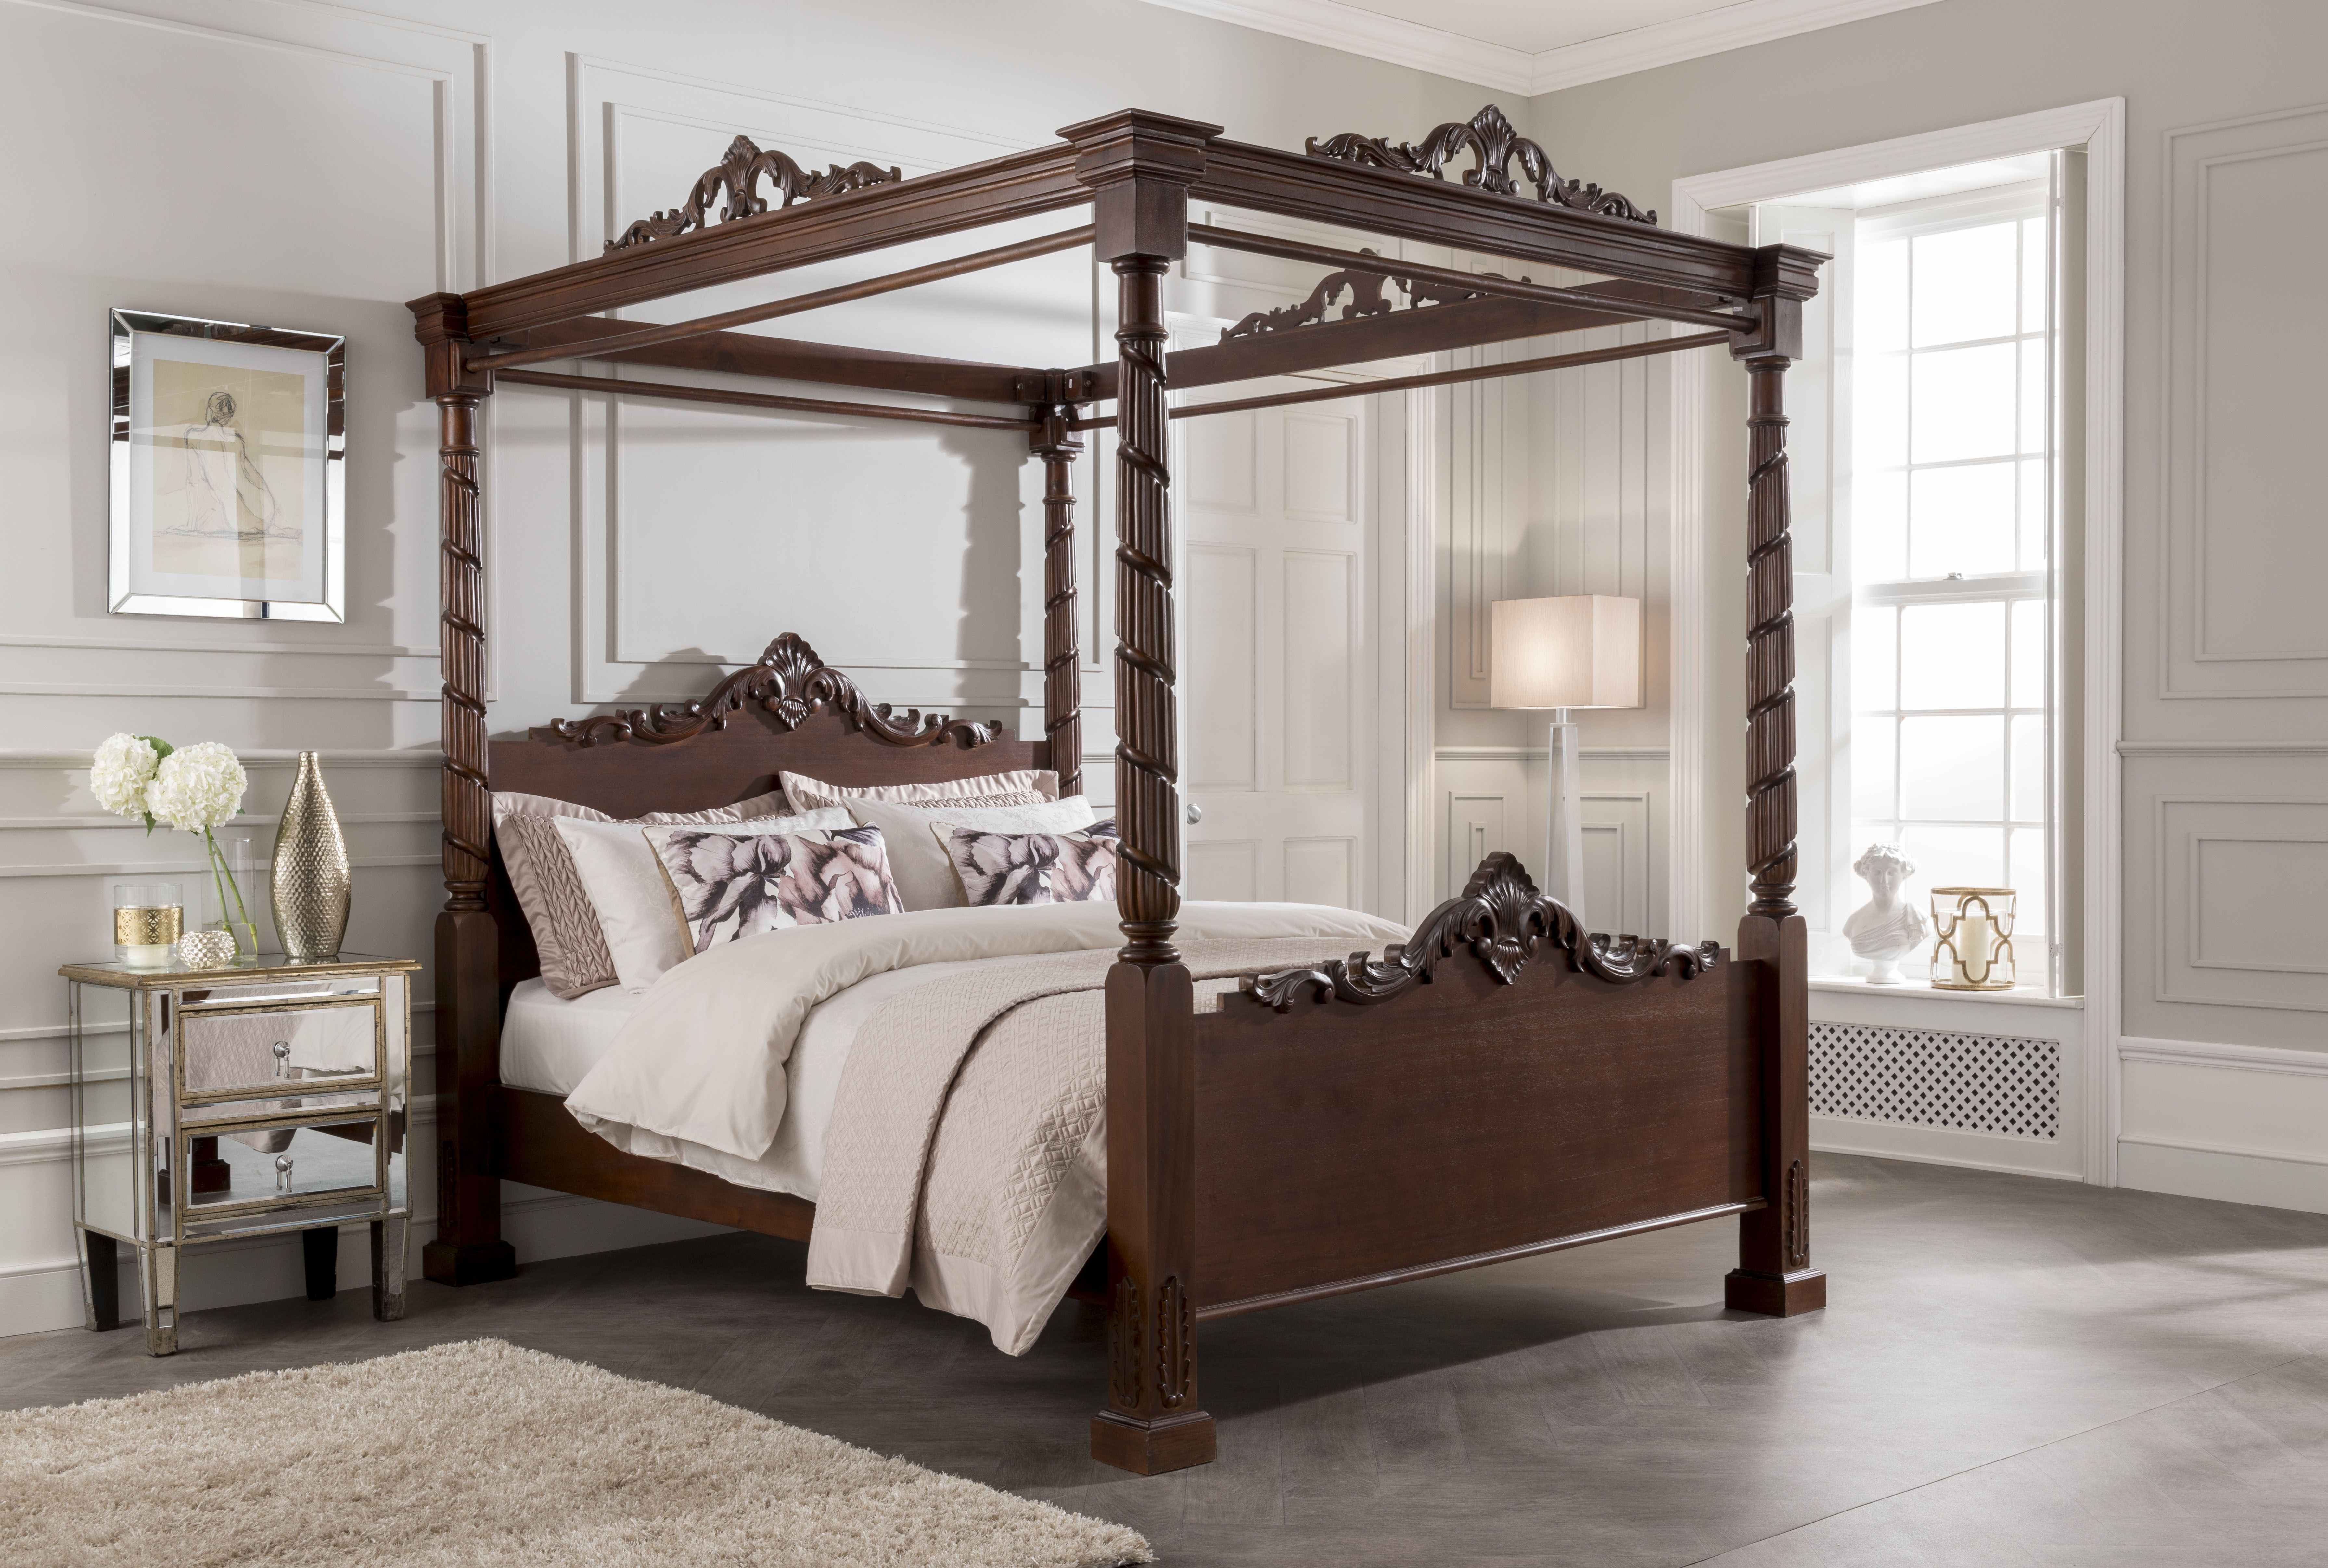 Bed and window placement  pin by homes direct  on four poster beds  pinterest